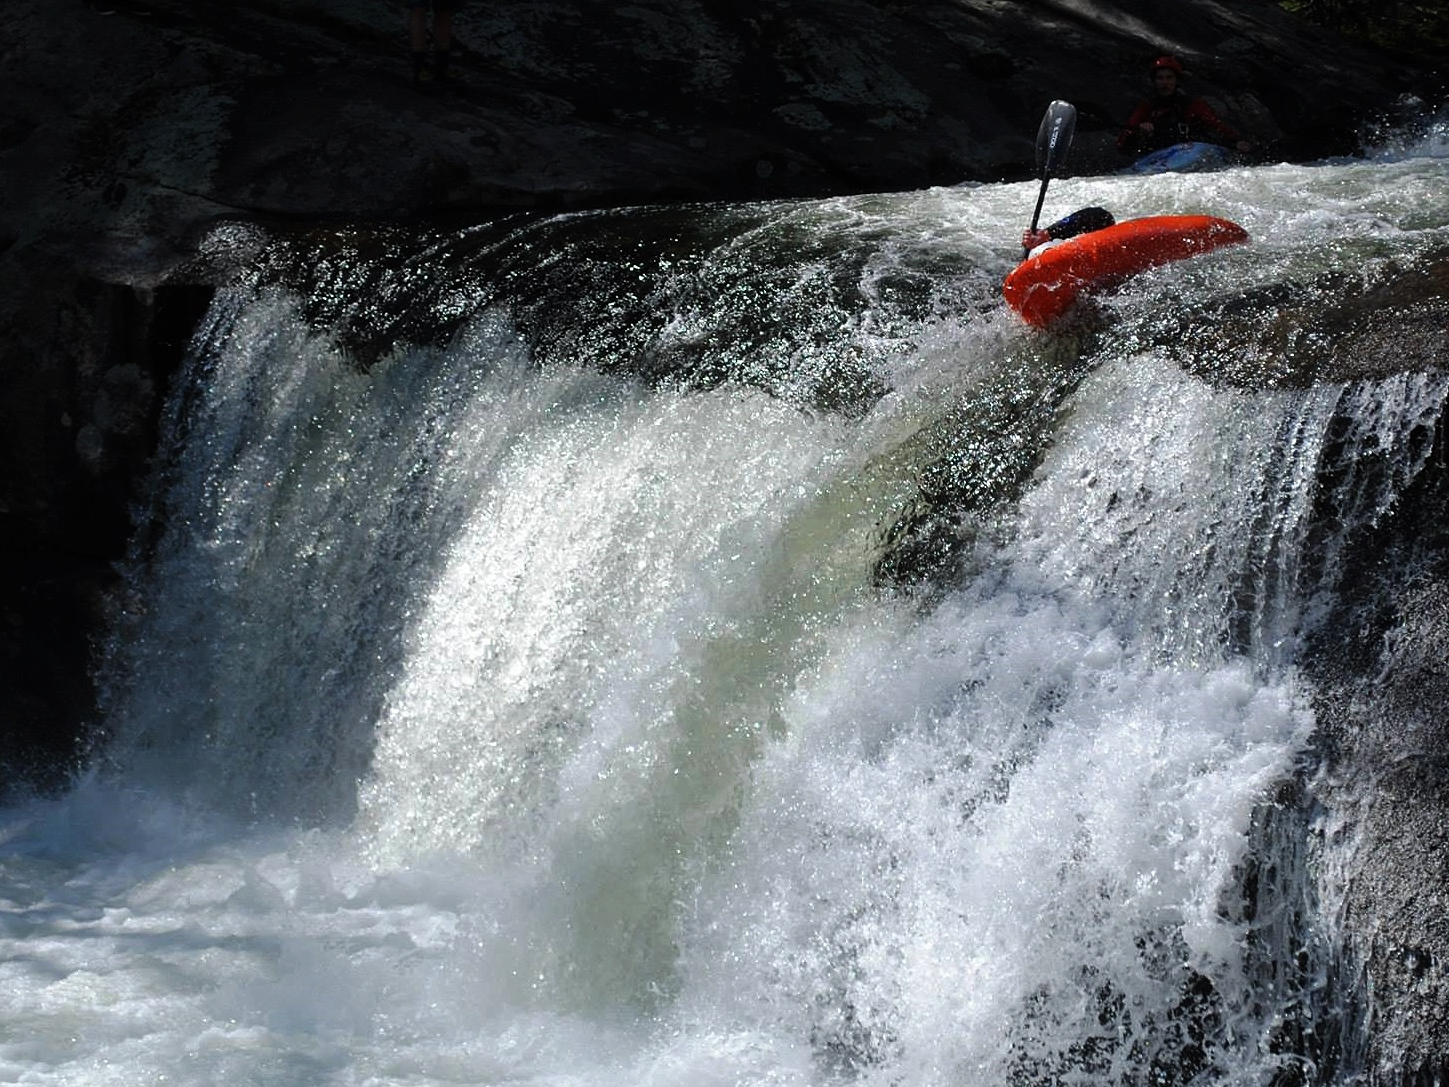 Taking an earful at Baby Falls - photo by Brian Payne